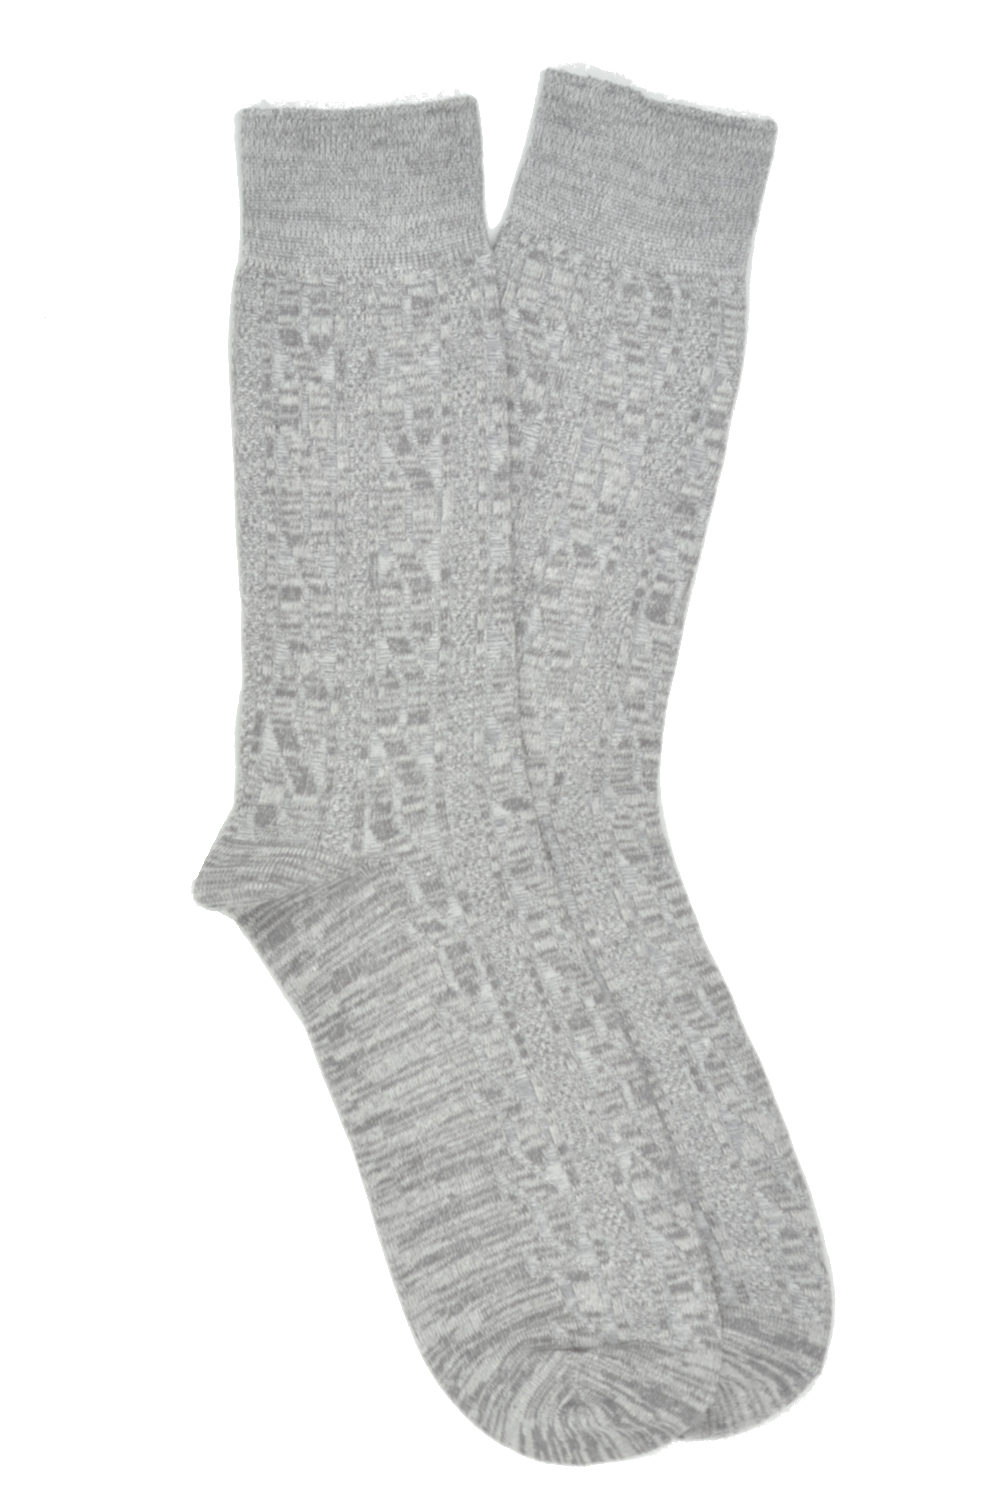 Curated Basics Grey Cable Socks